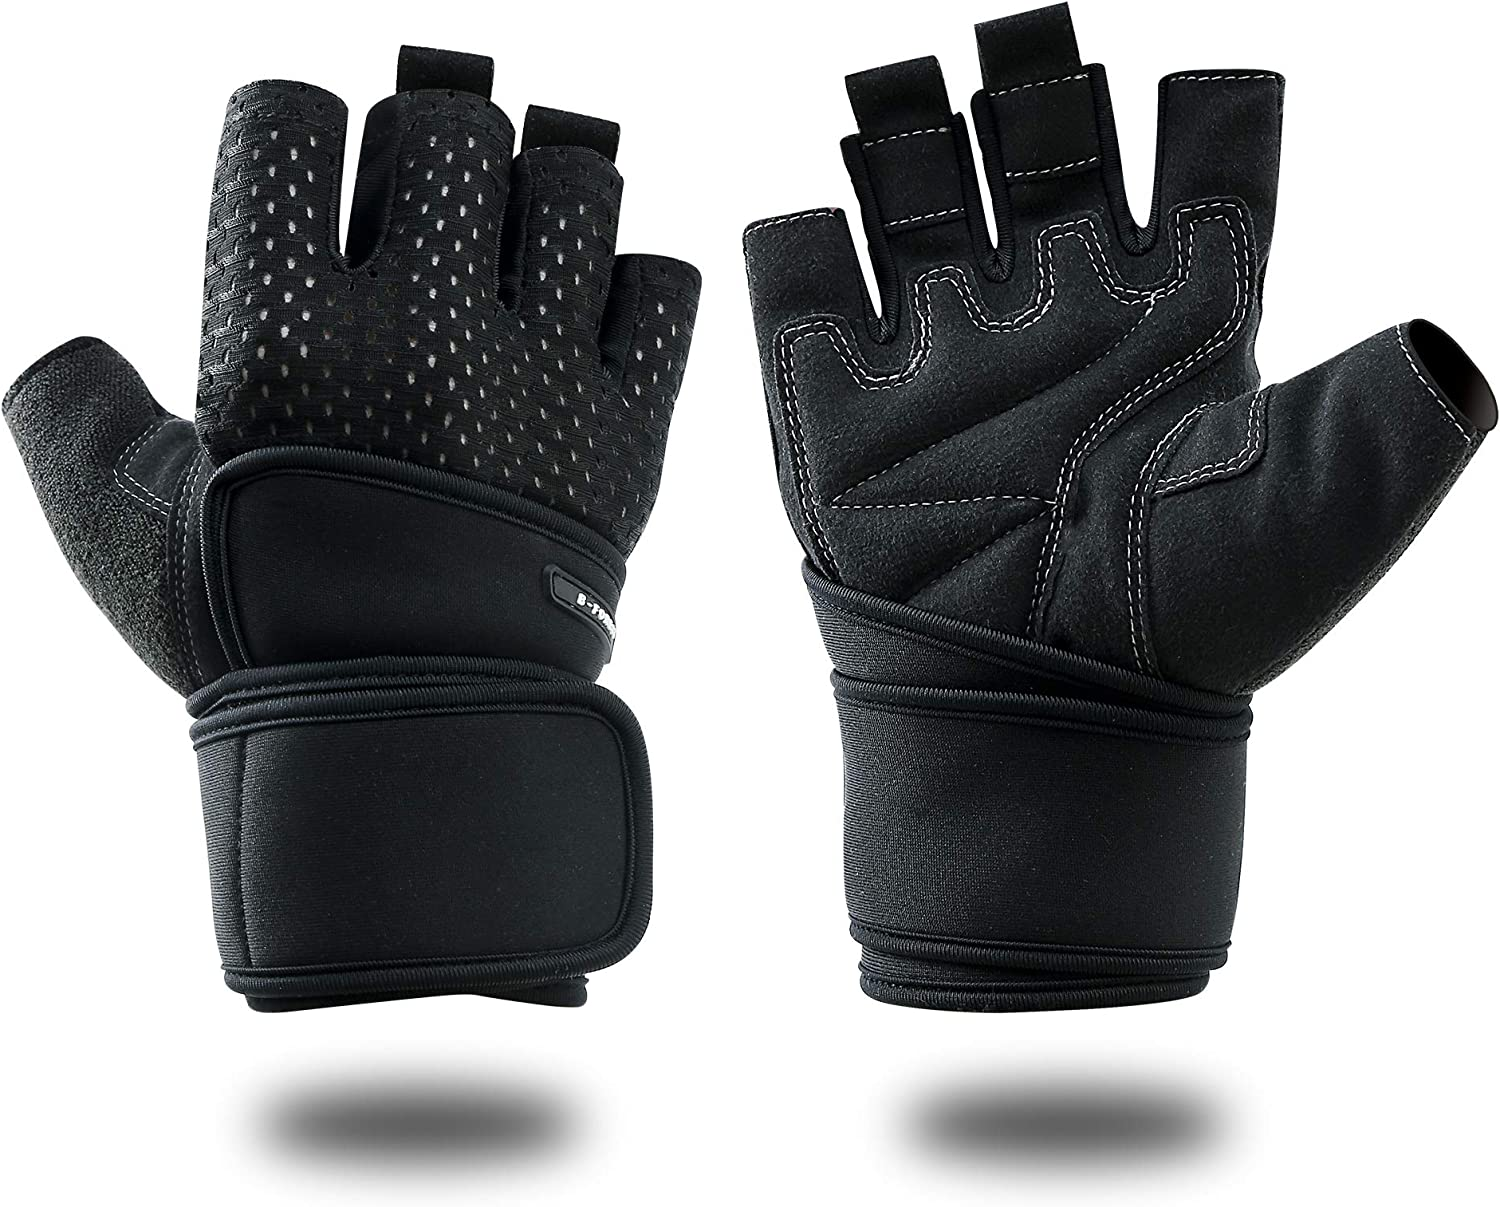 B-Forest Workout Gloves Gym Ultra-Cheap Deals for Women ! Super beauty product restock quality top! Men Lifting Weight